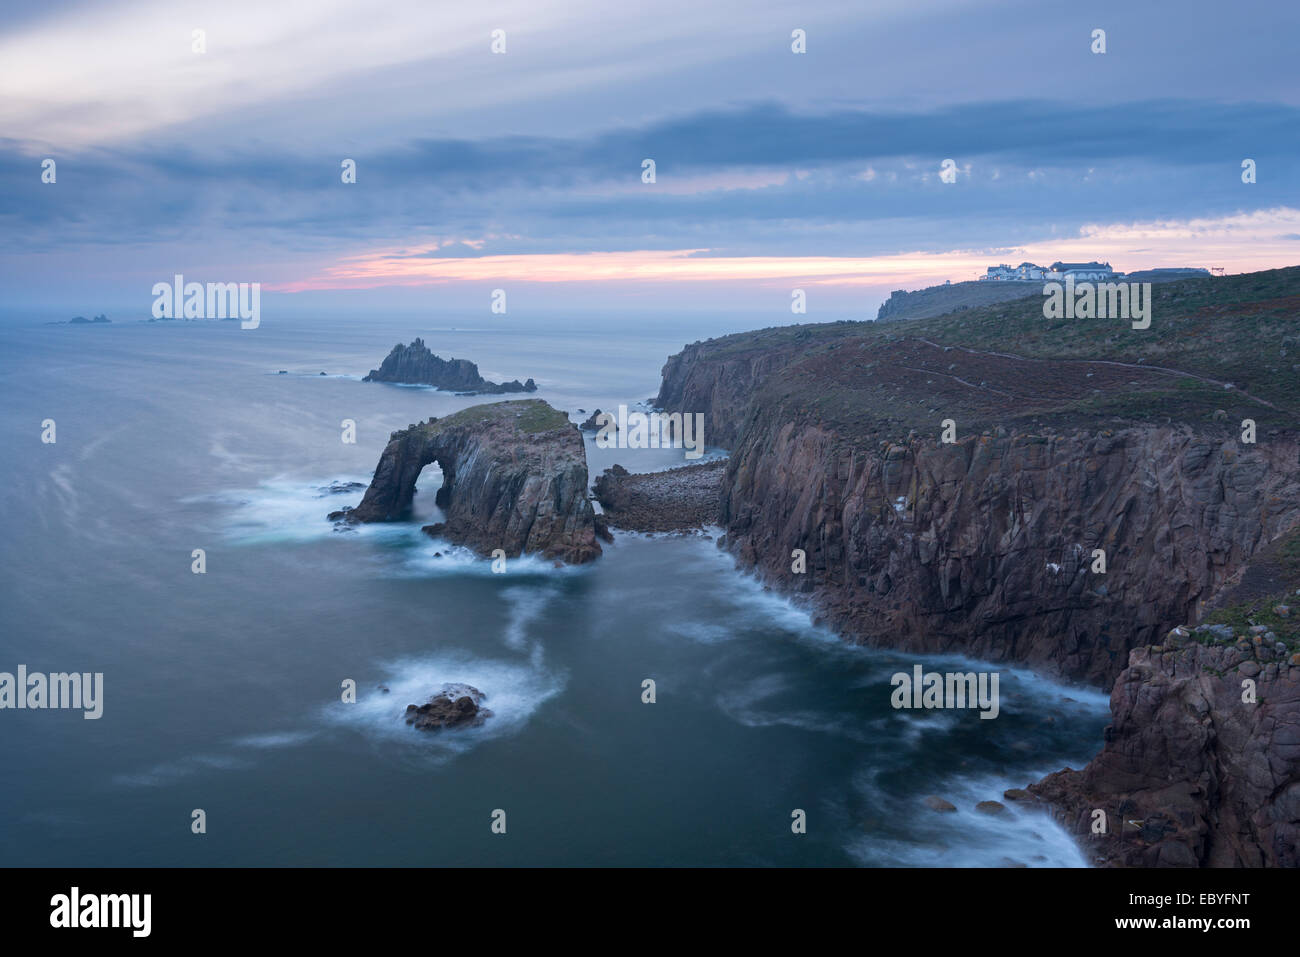 Sunset over the dramatic cliffs of Land's End, Cornwall, England. Autumn (September) 2014. - Stock Image